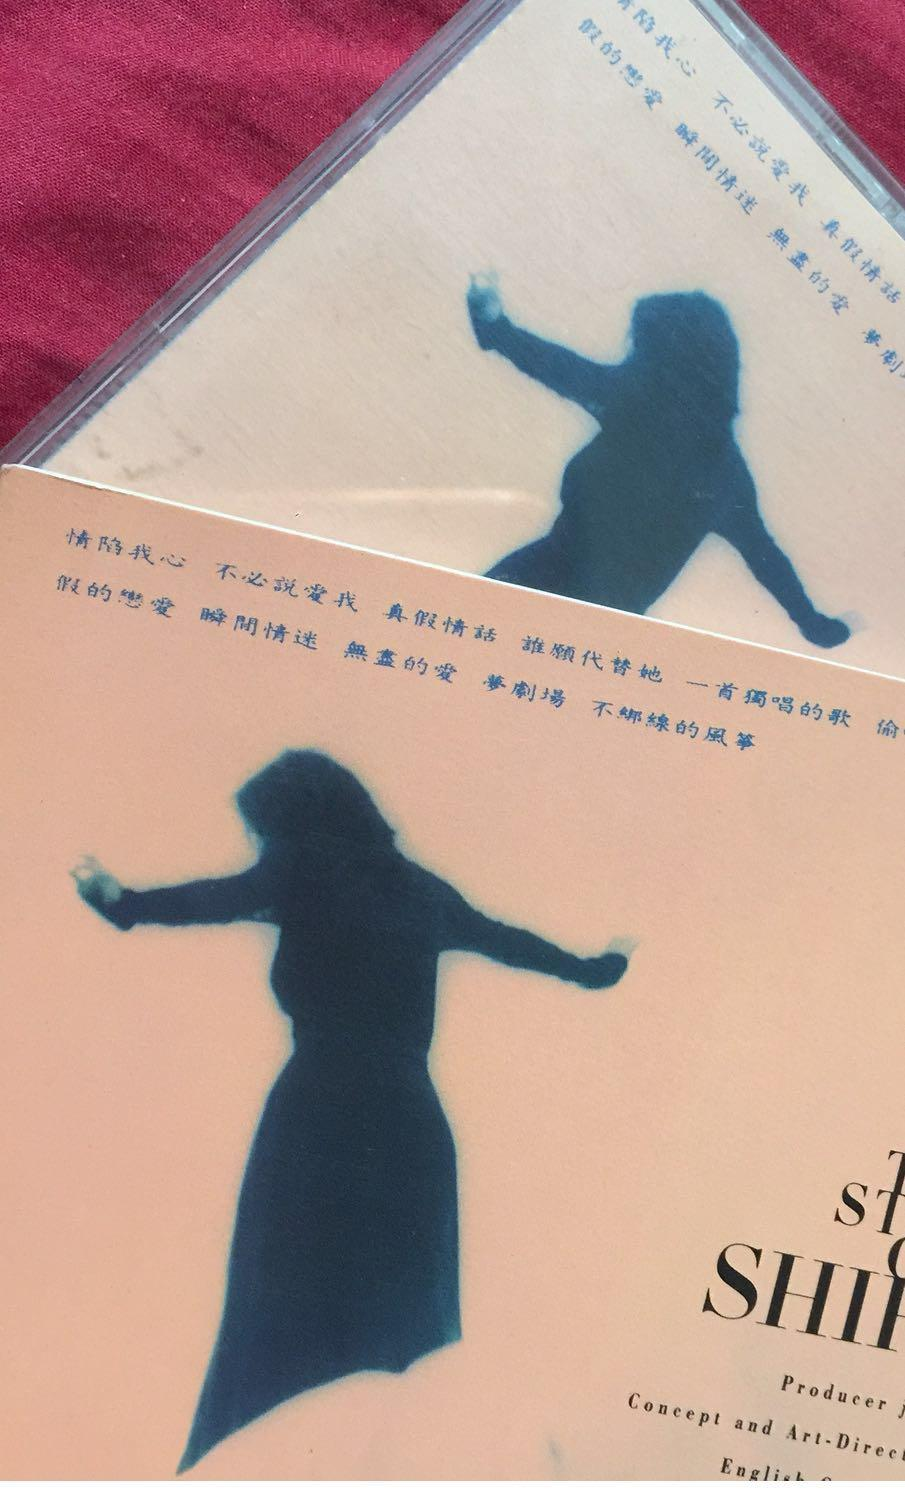 The story of Shirley關淑怡cd